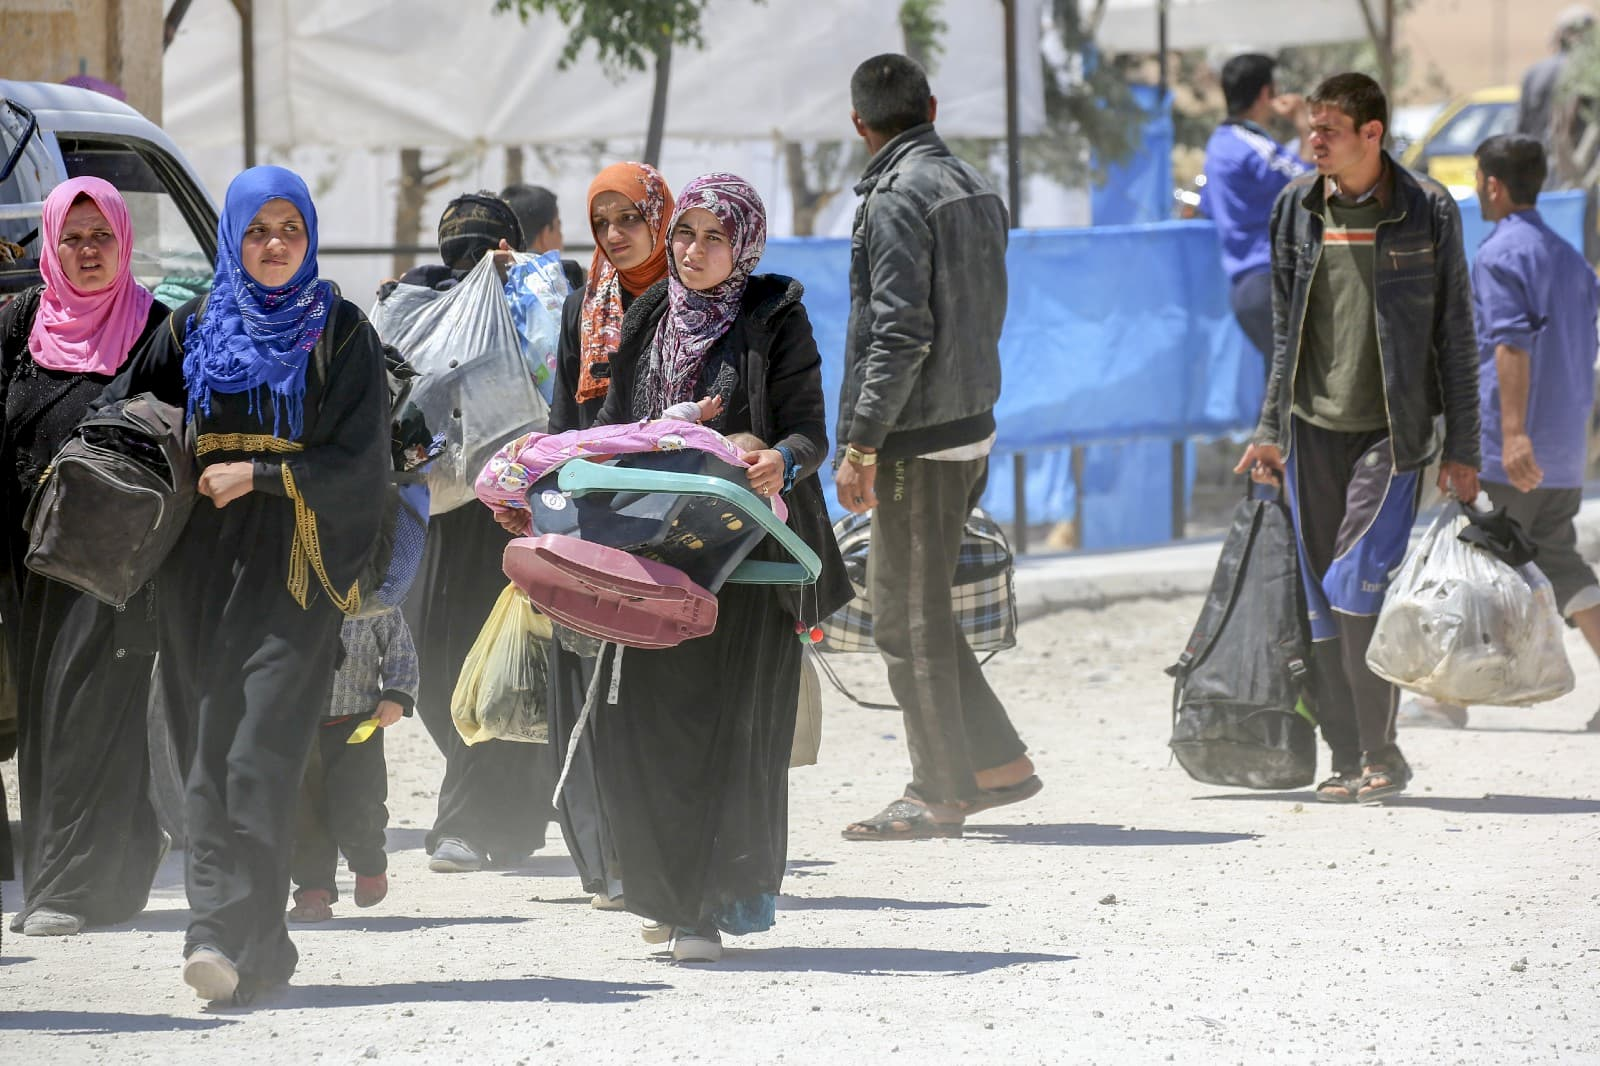 Families are seeking safety in poorly equipped temporary shelters and camps in the area